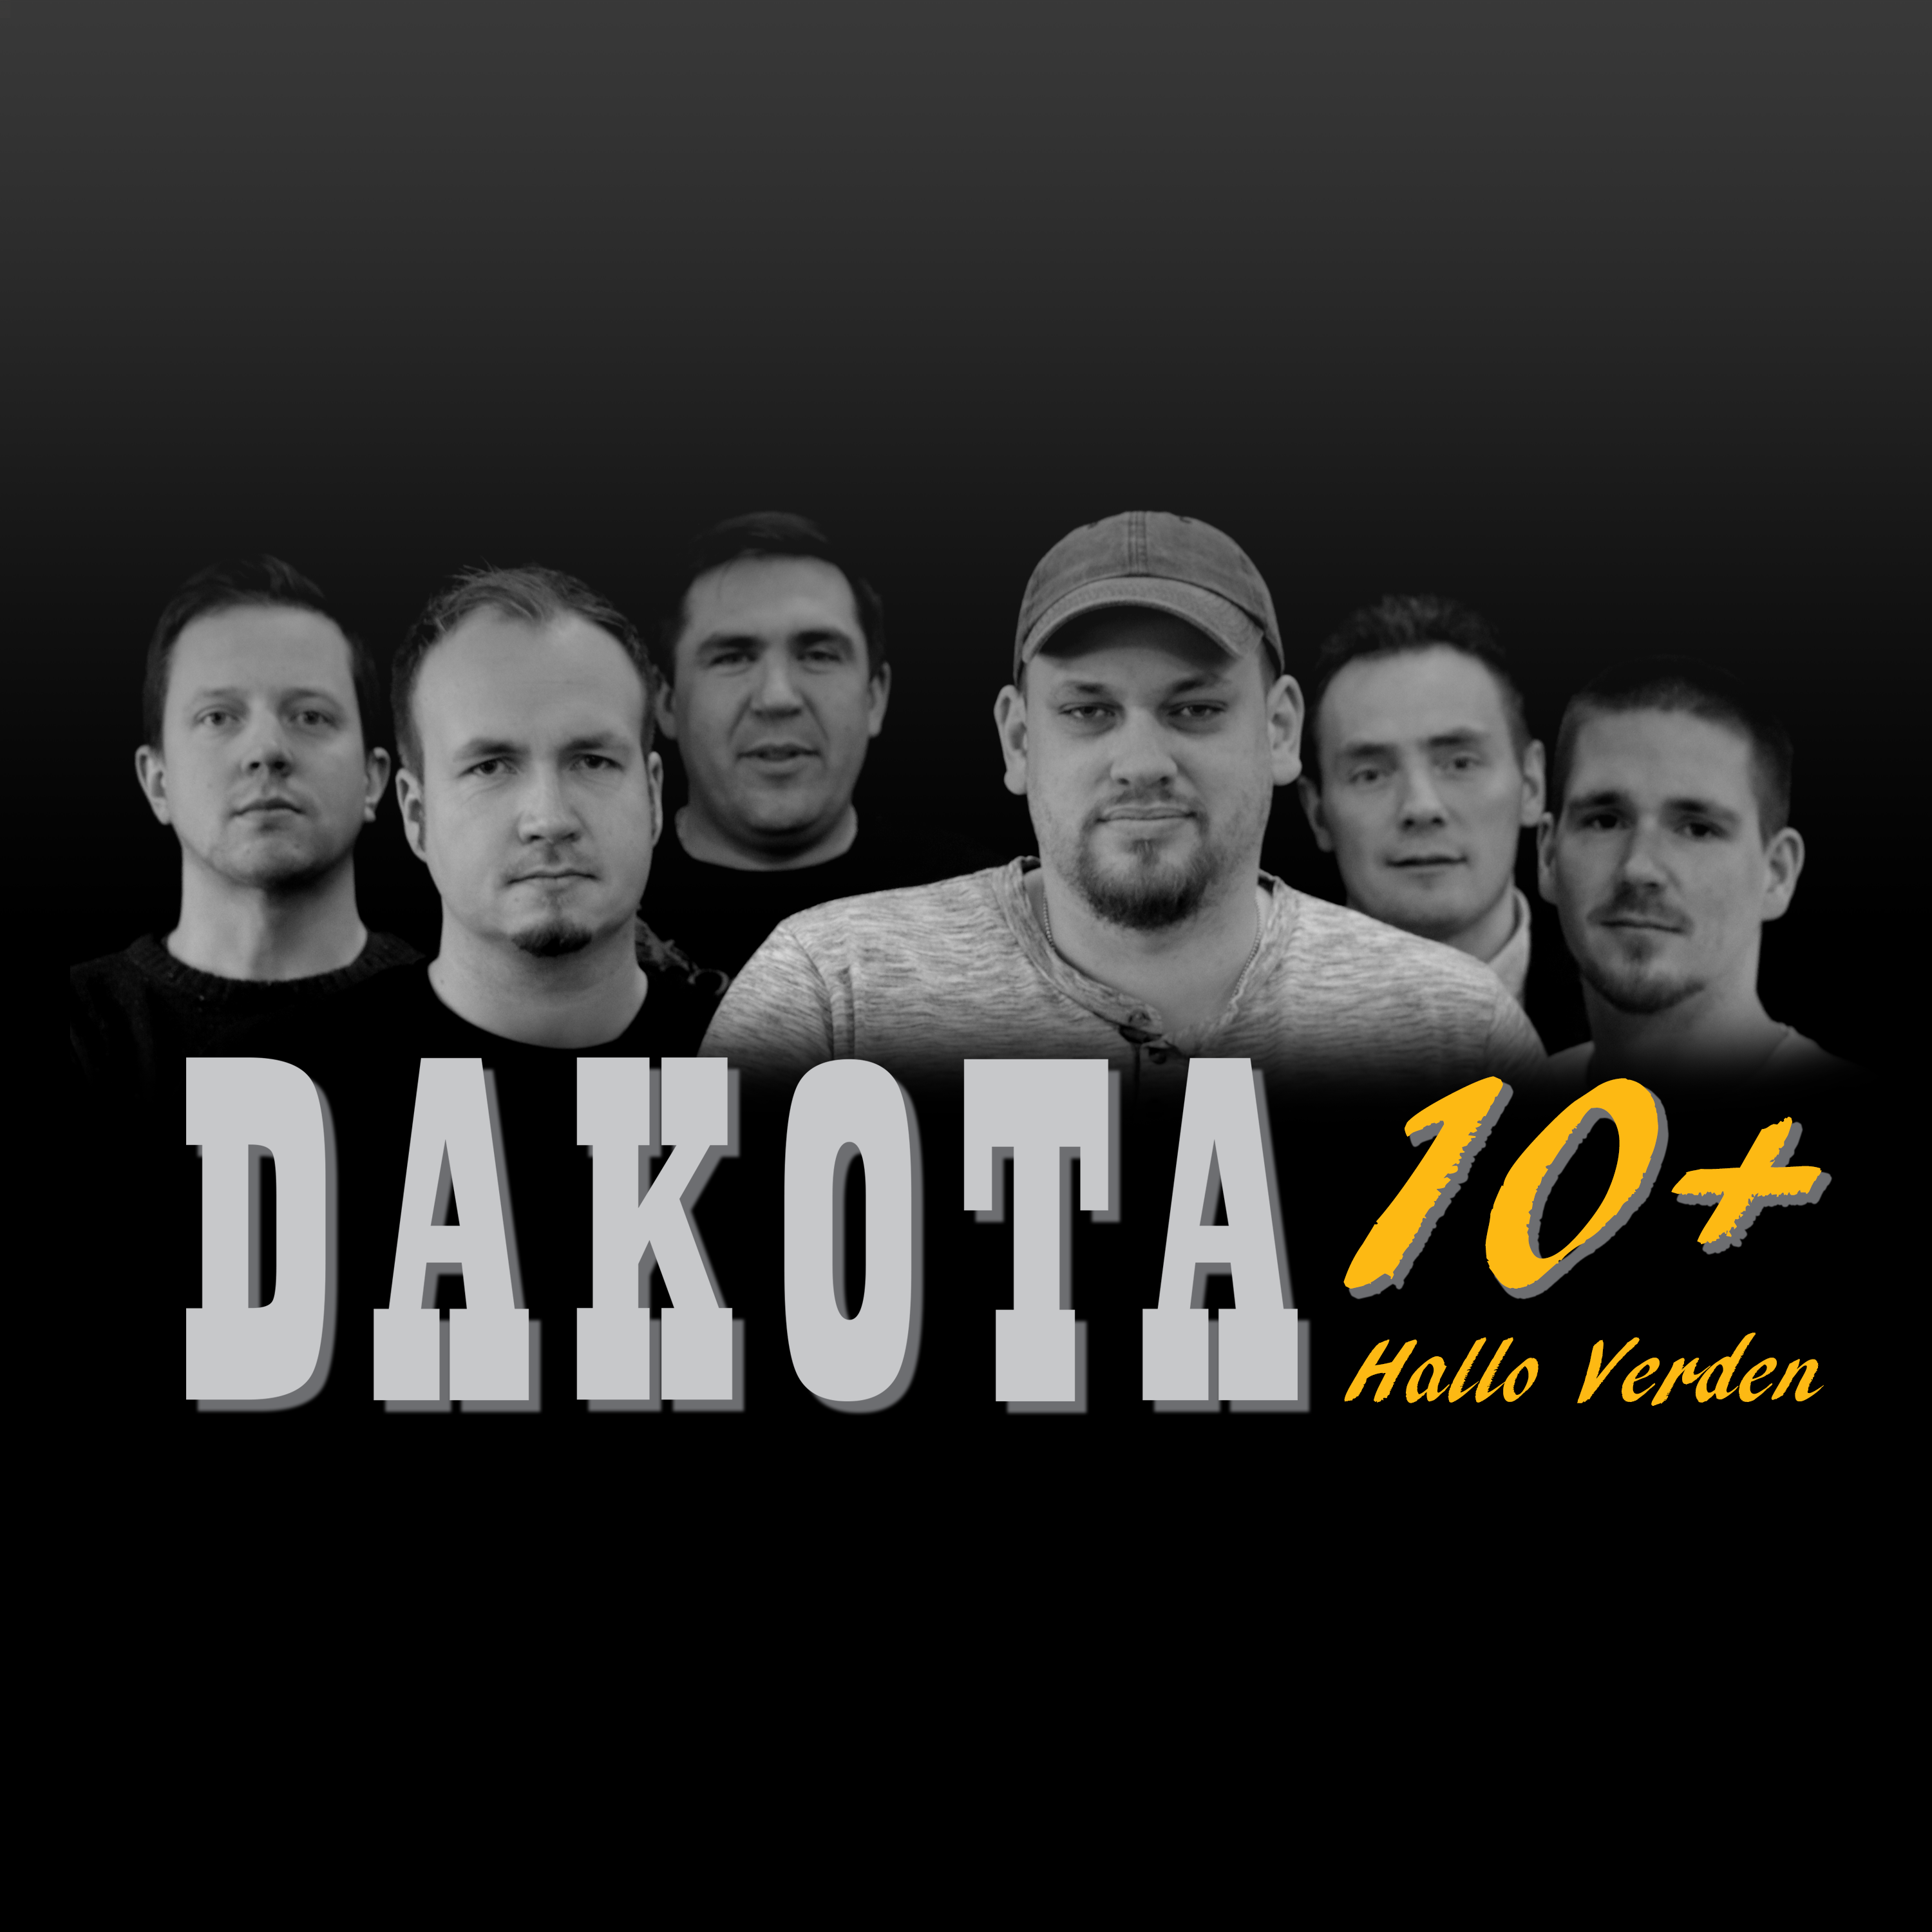 Dakota – Hallo verden